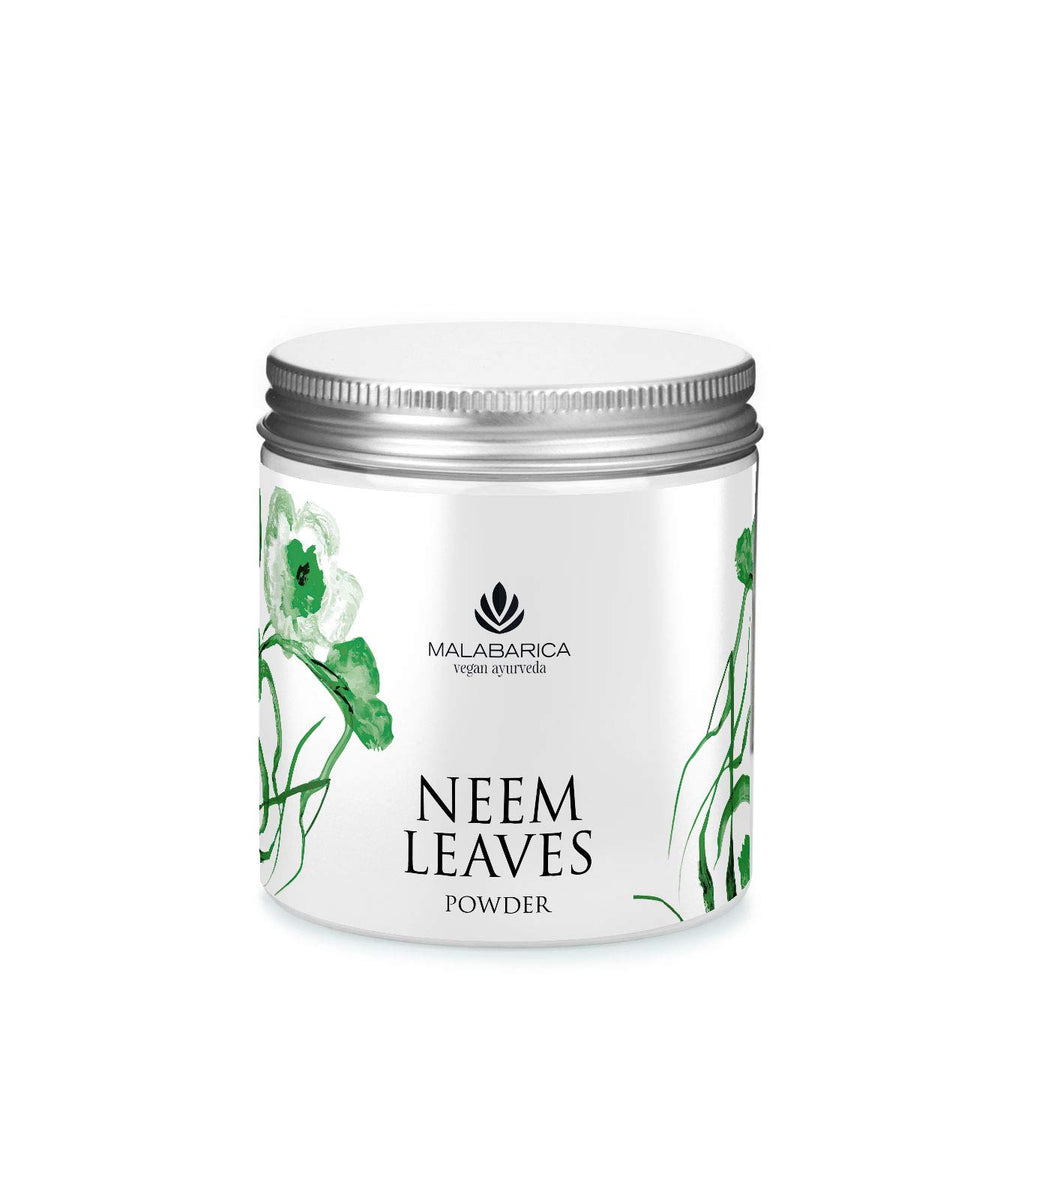 Neem Leaves Powder - For Skin and Hair Care - 50 gm